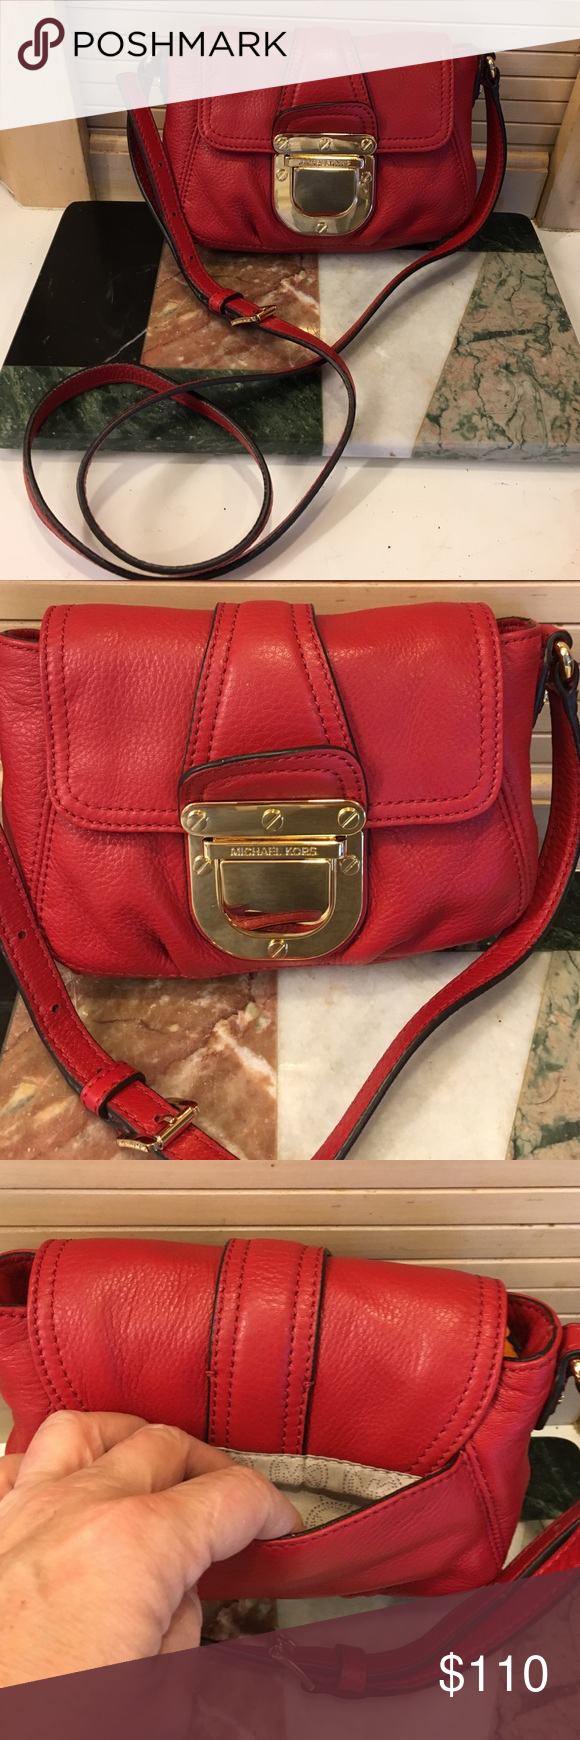 Michael Kors Red Leather Bag This is a small bag but it holds slot only used once it's like brand new great for Xmas! Michael Kors Bags Mini Bags